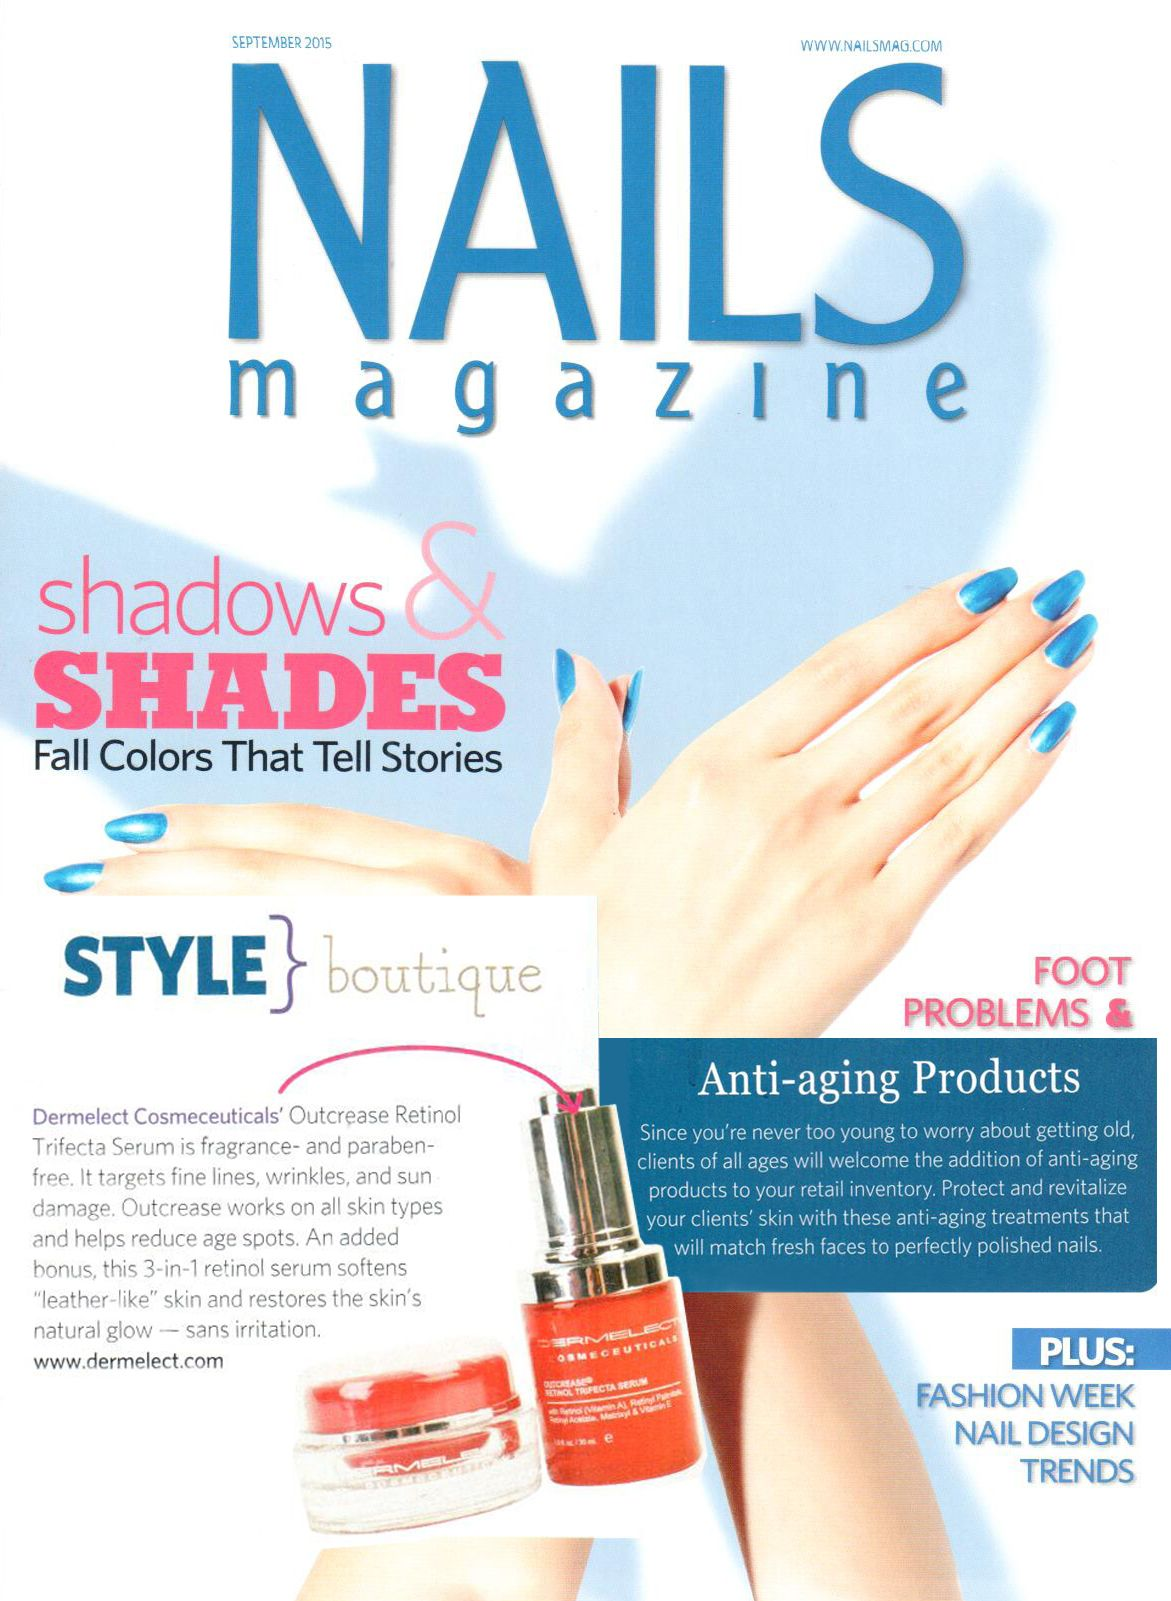 Nails Magazine Style Boutique featuring Dermelect Cosmeceuticals ...